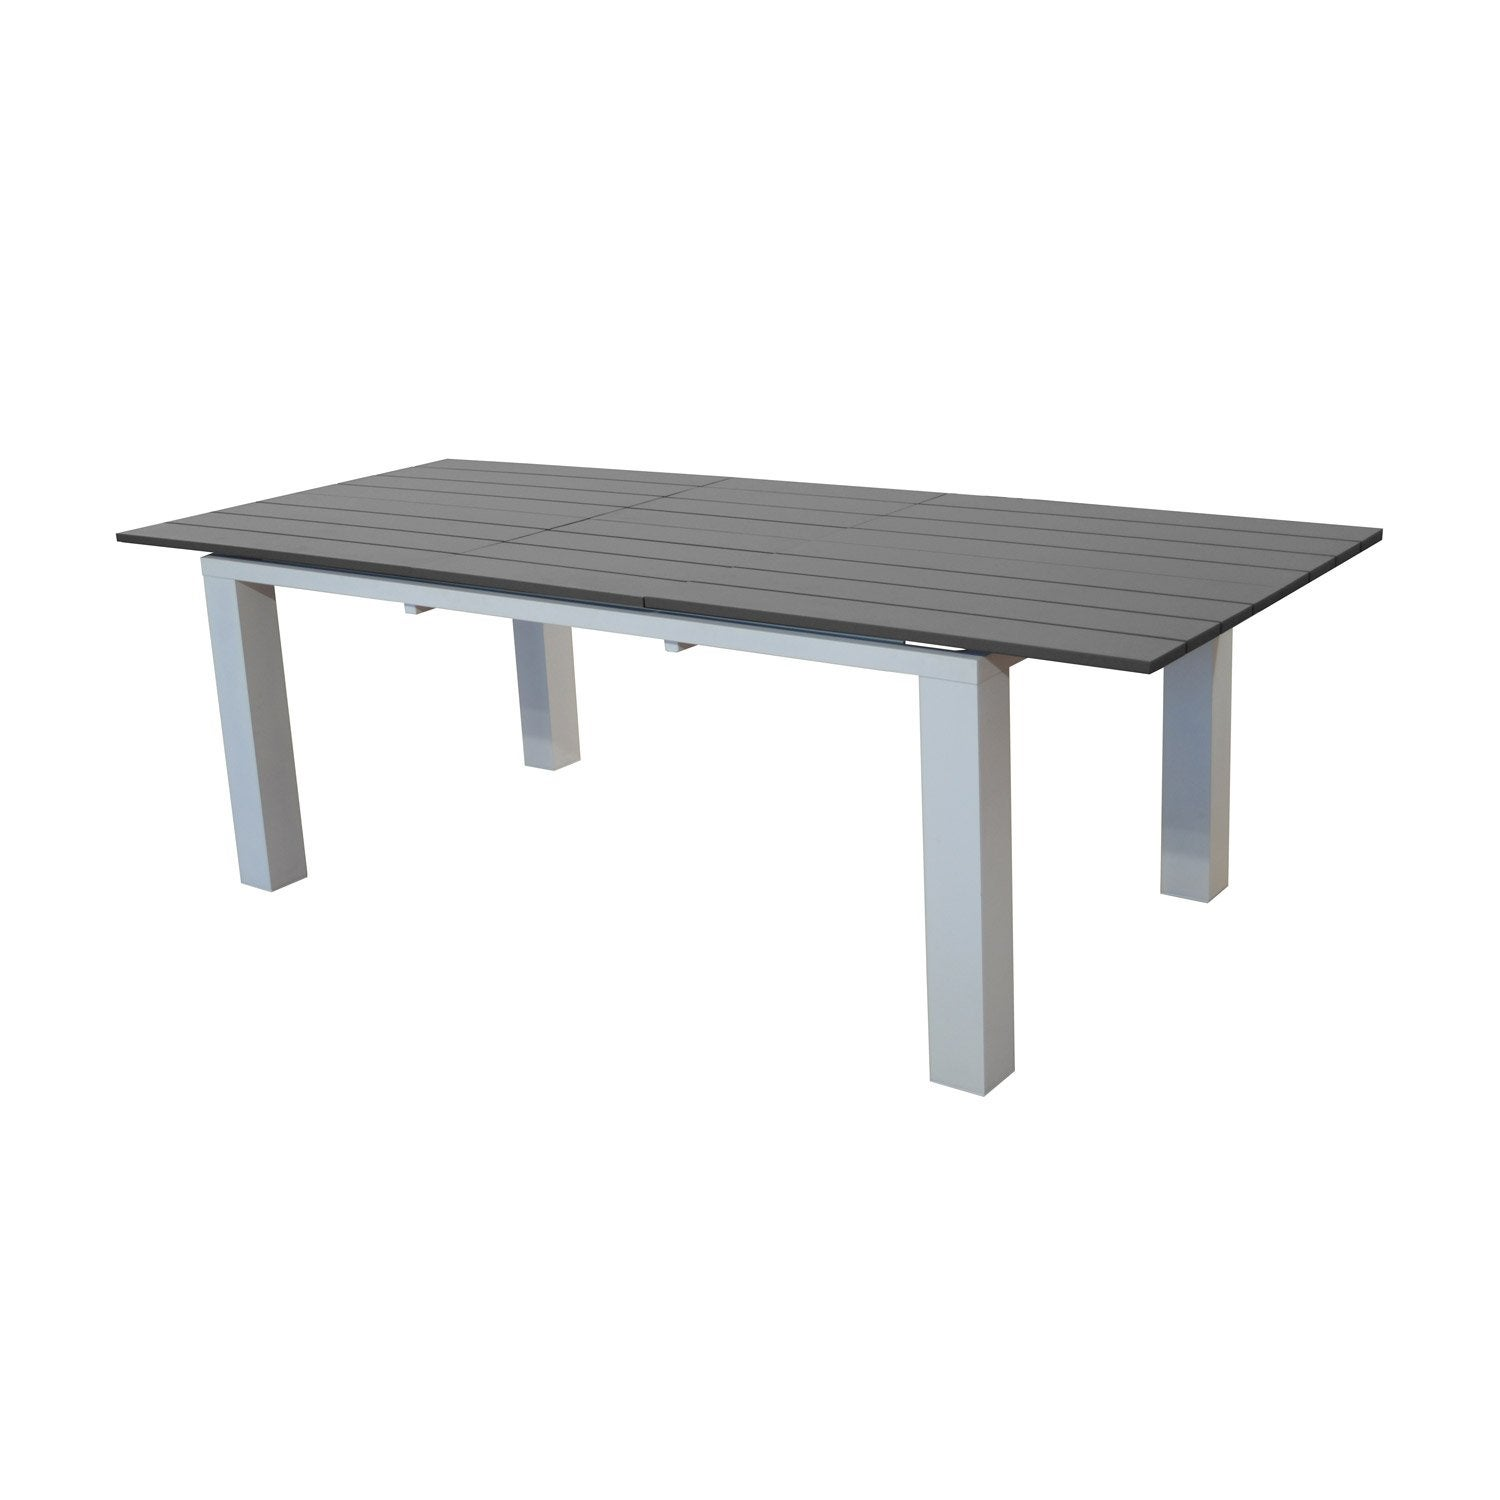 table de jardin elena rectangulaire blanc grey 8 personnes leroy merlin. Black Bedroom Furniture Sets. Home Design Ideas